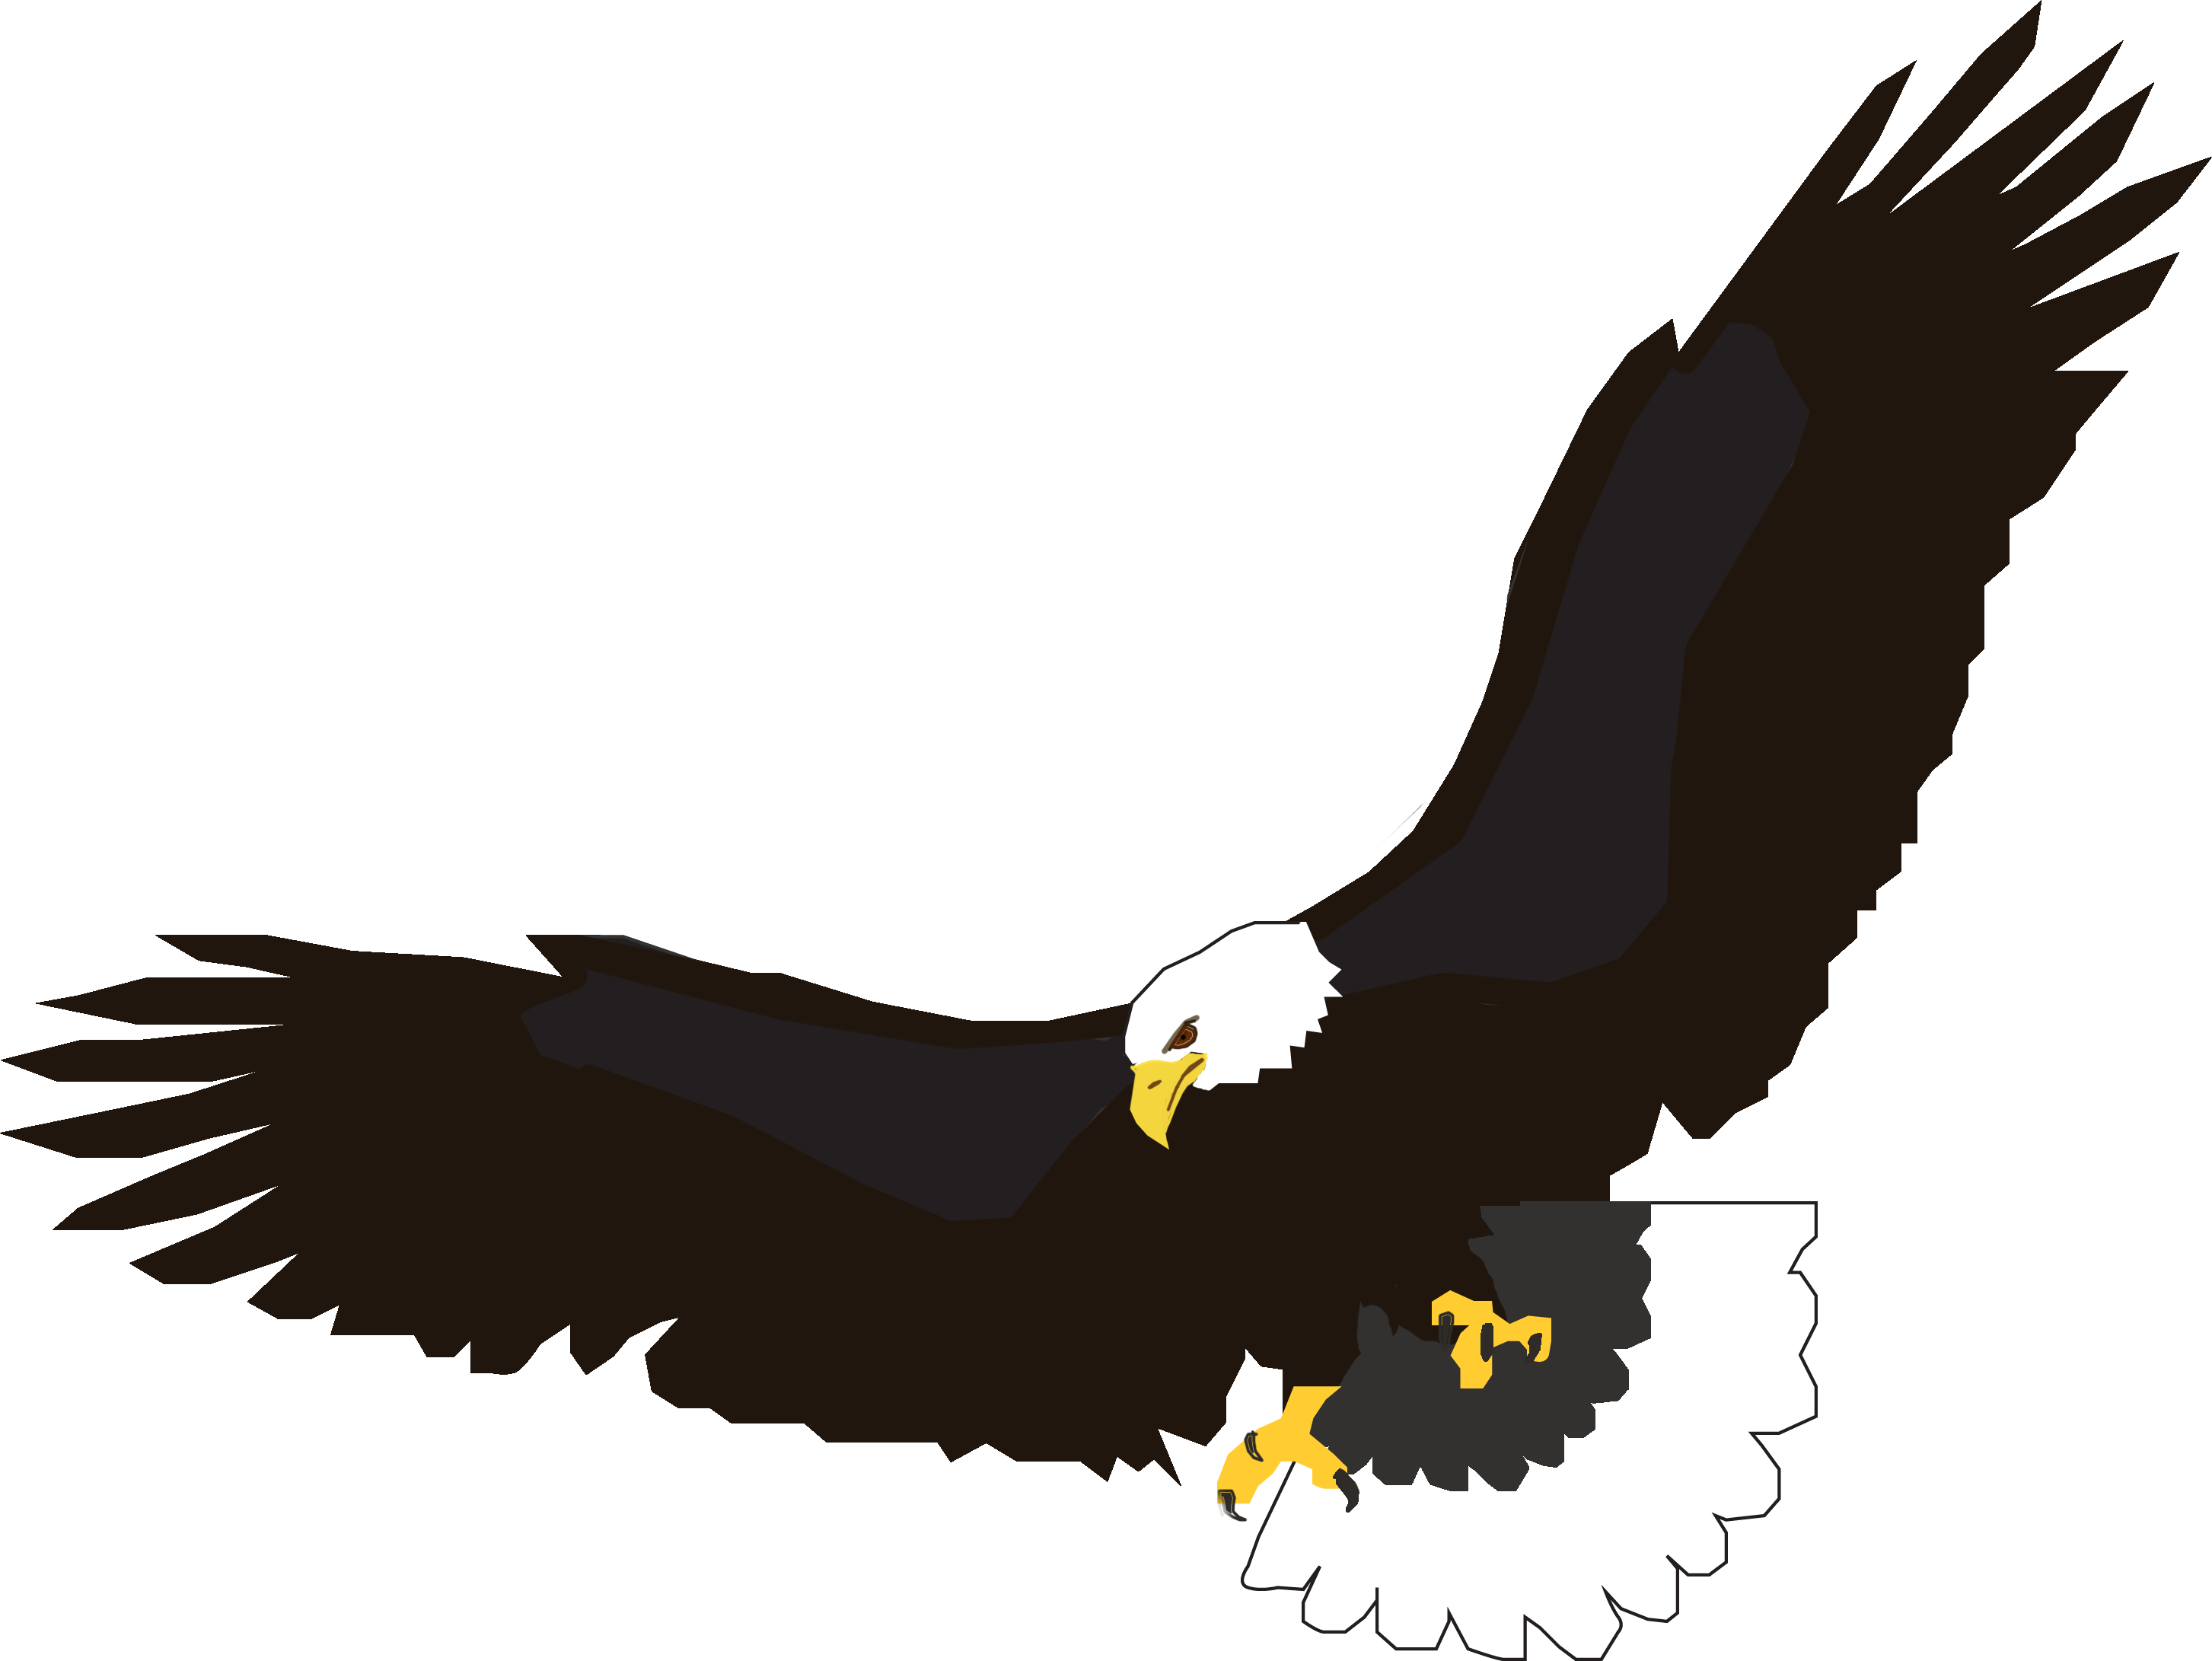 Eagle wearing a crown clipart free stock Download Flying Eagle Png Image Download HQ PNG Image | FreePNGImg free stock